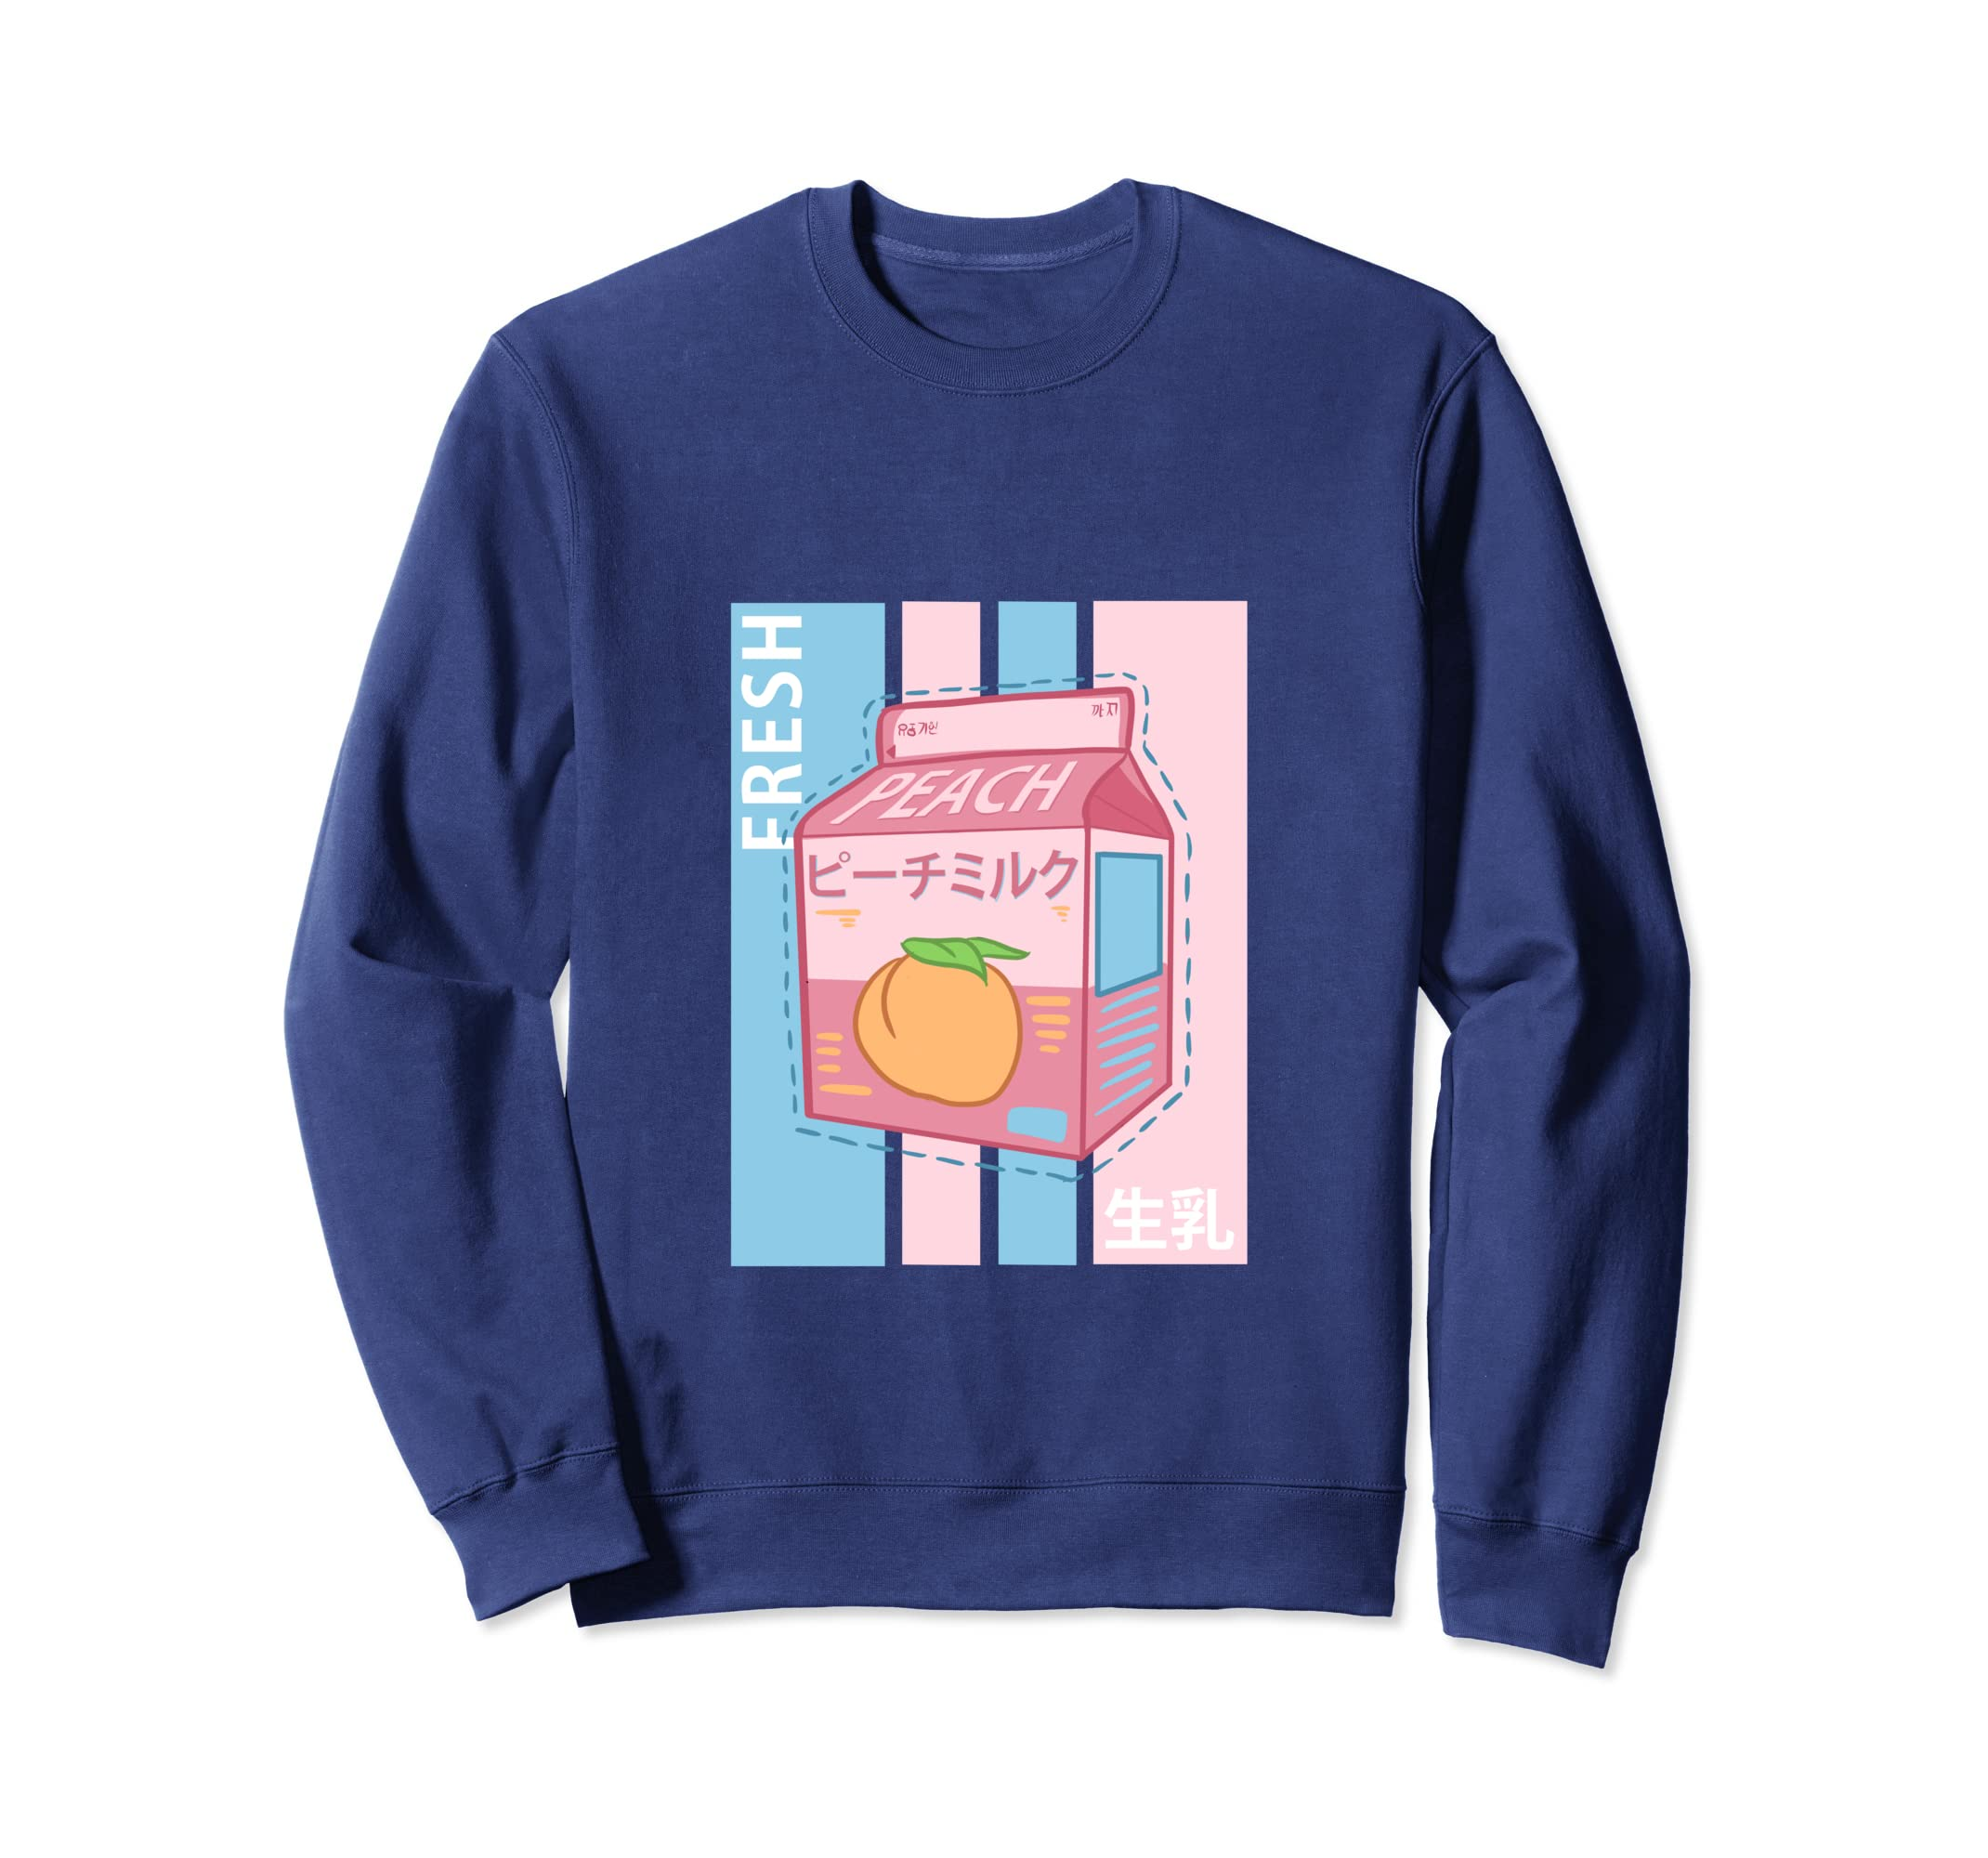 Amazon com: Japanese Retro Milk Anime Sweatshirt Women Girls